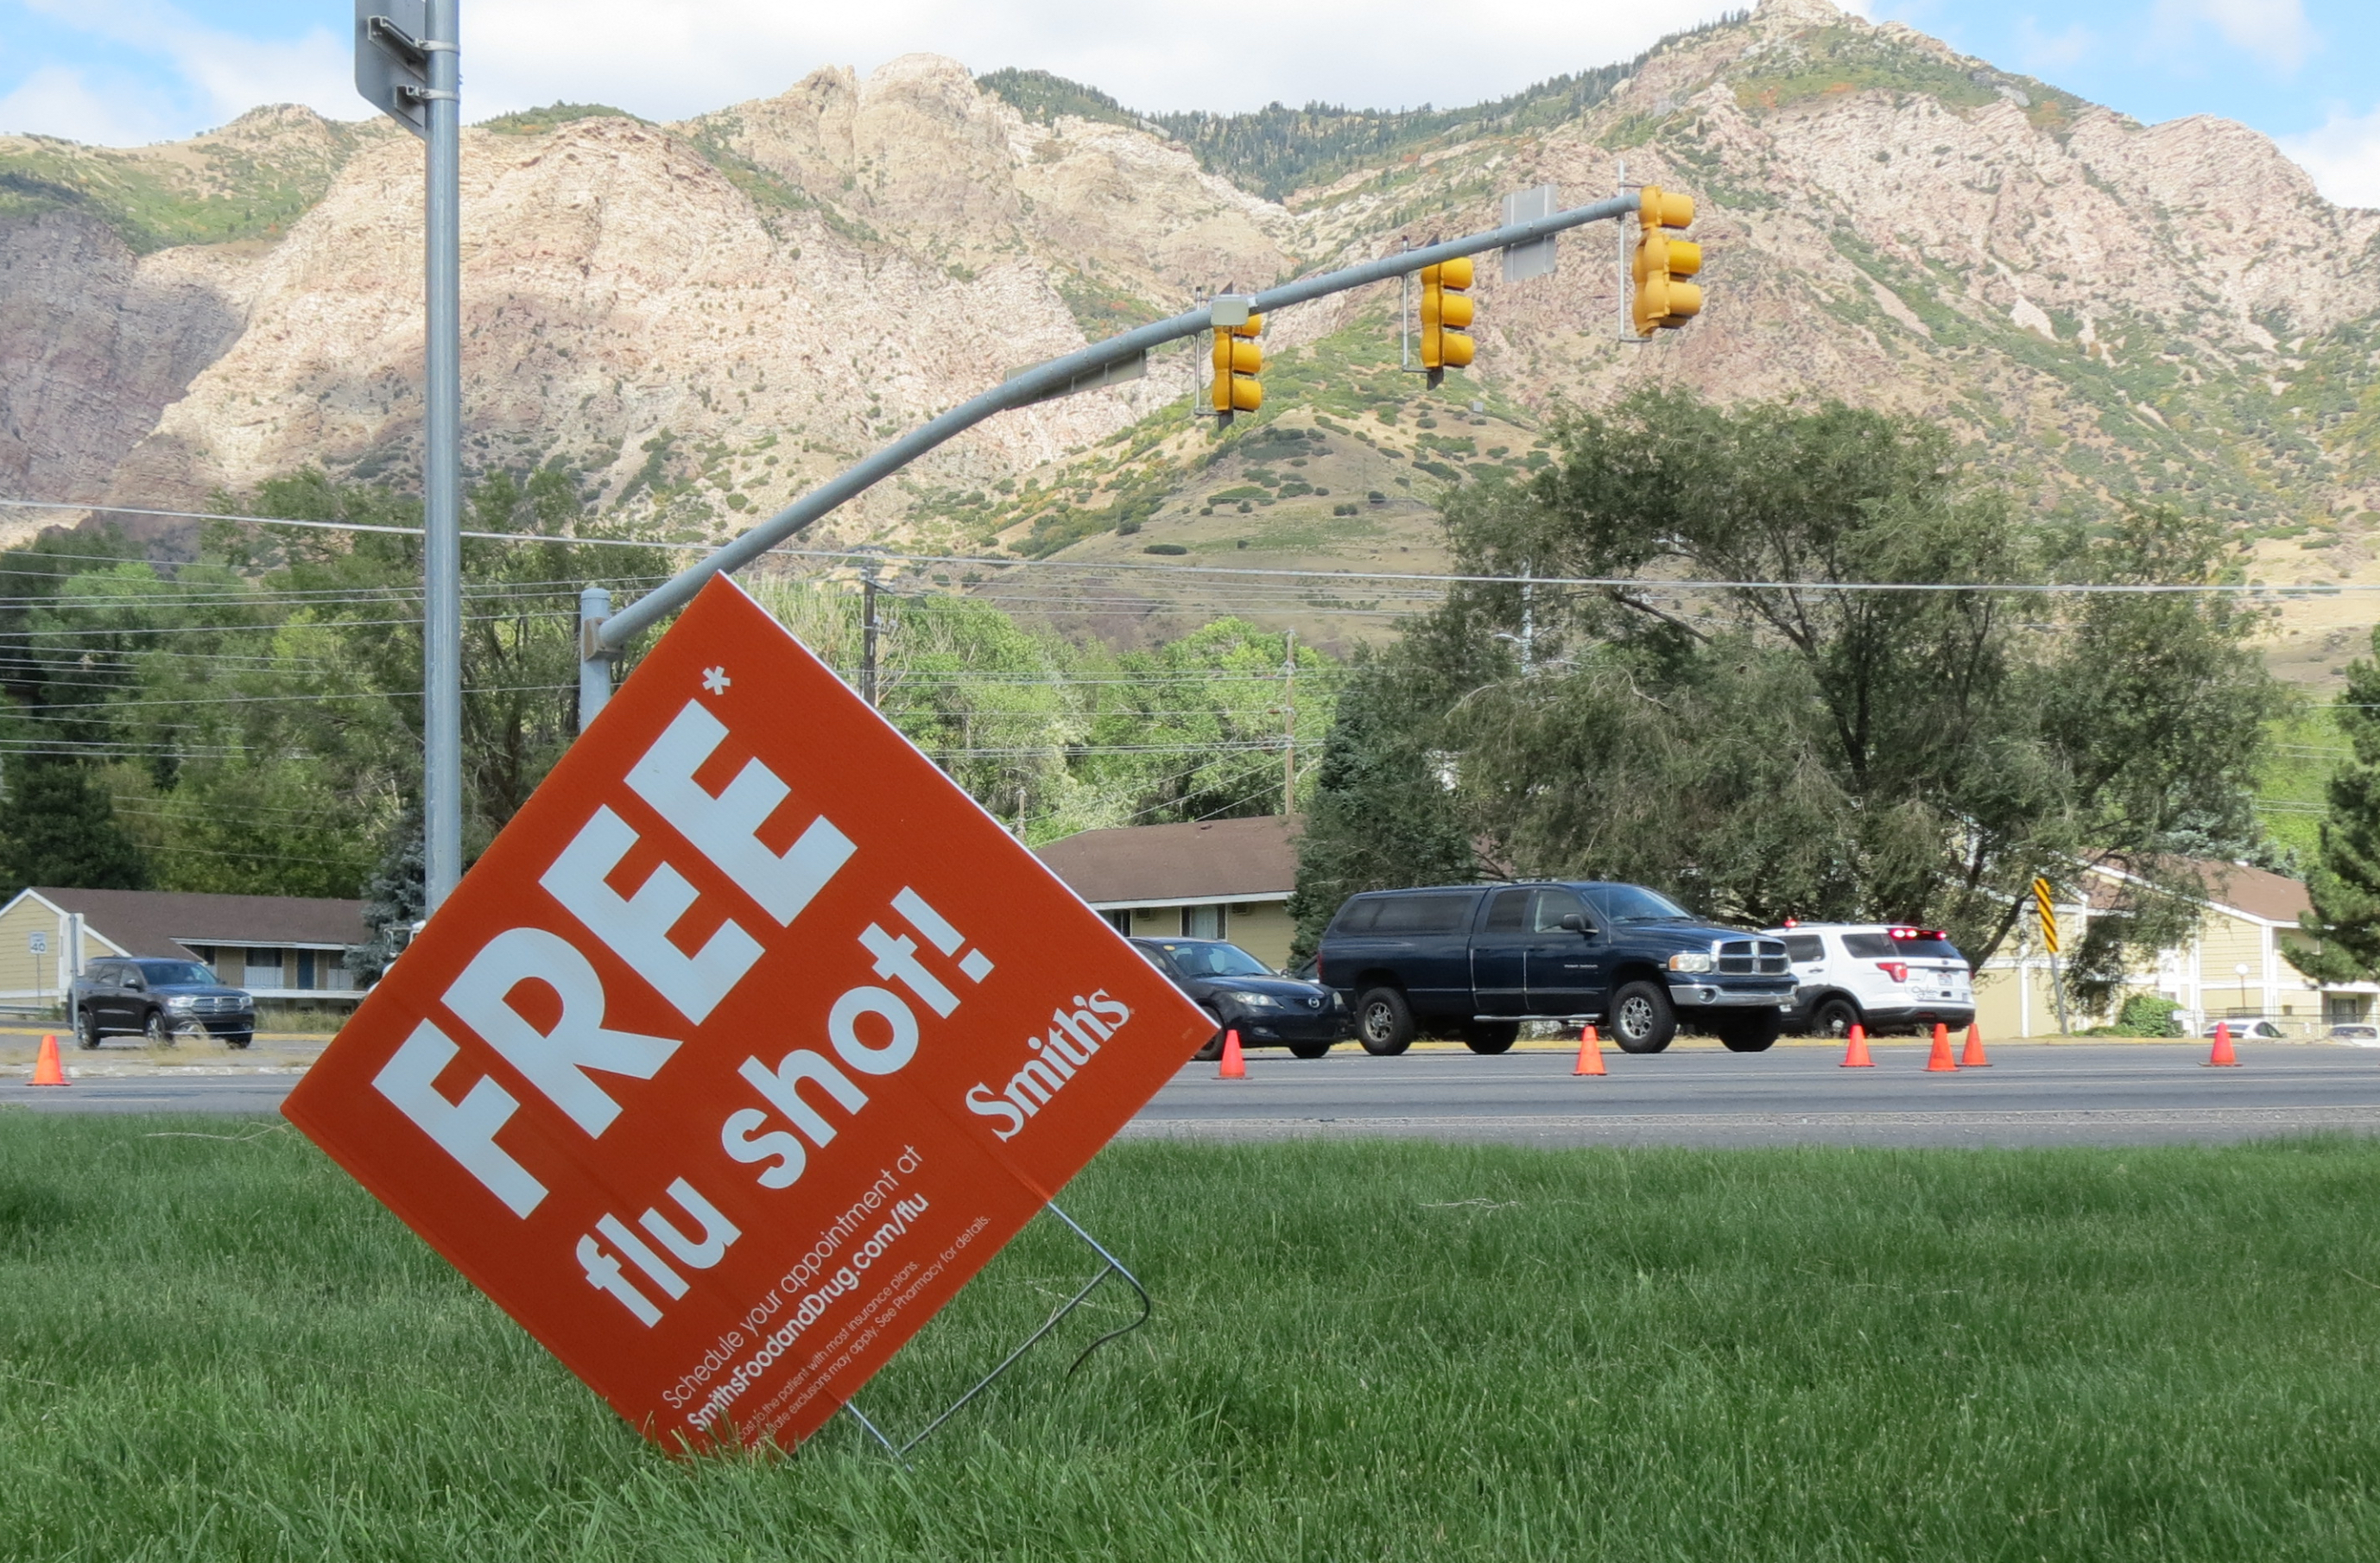 A sign advertising flu shots is displayed on Tuesday, Sept. 8, 2020, in Ogden, Utah. The annual flu season is gearing up alongside the coronavirus pandemic, and Utah health officials are encouraging people to get their flu shots.